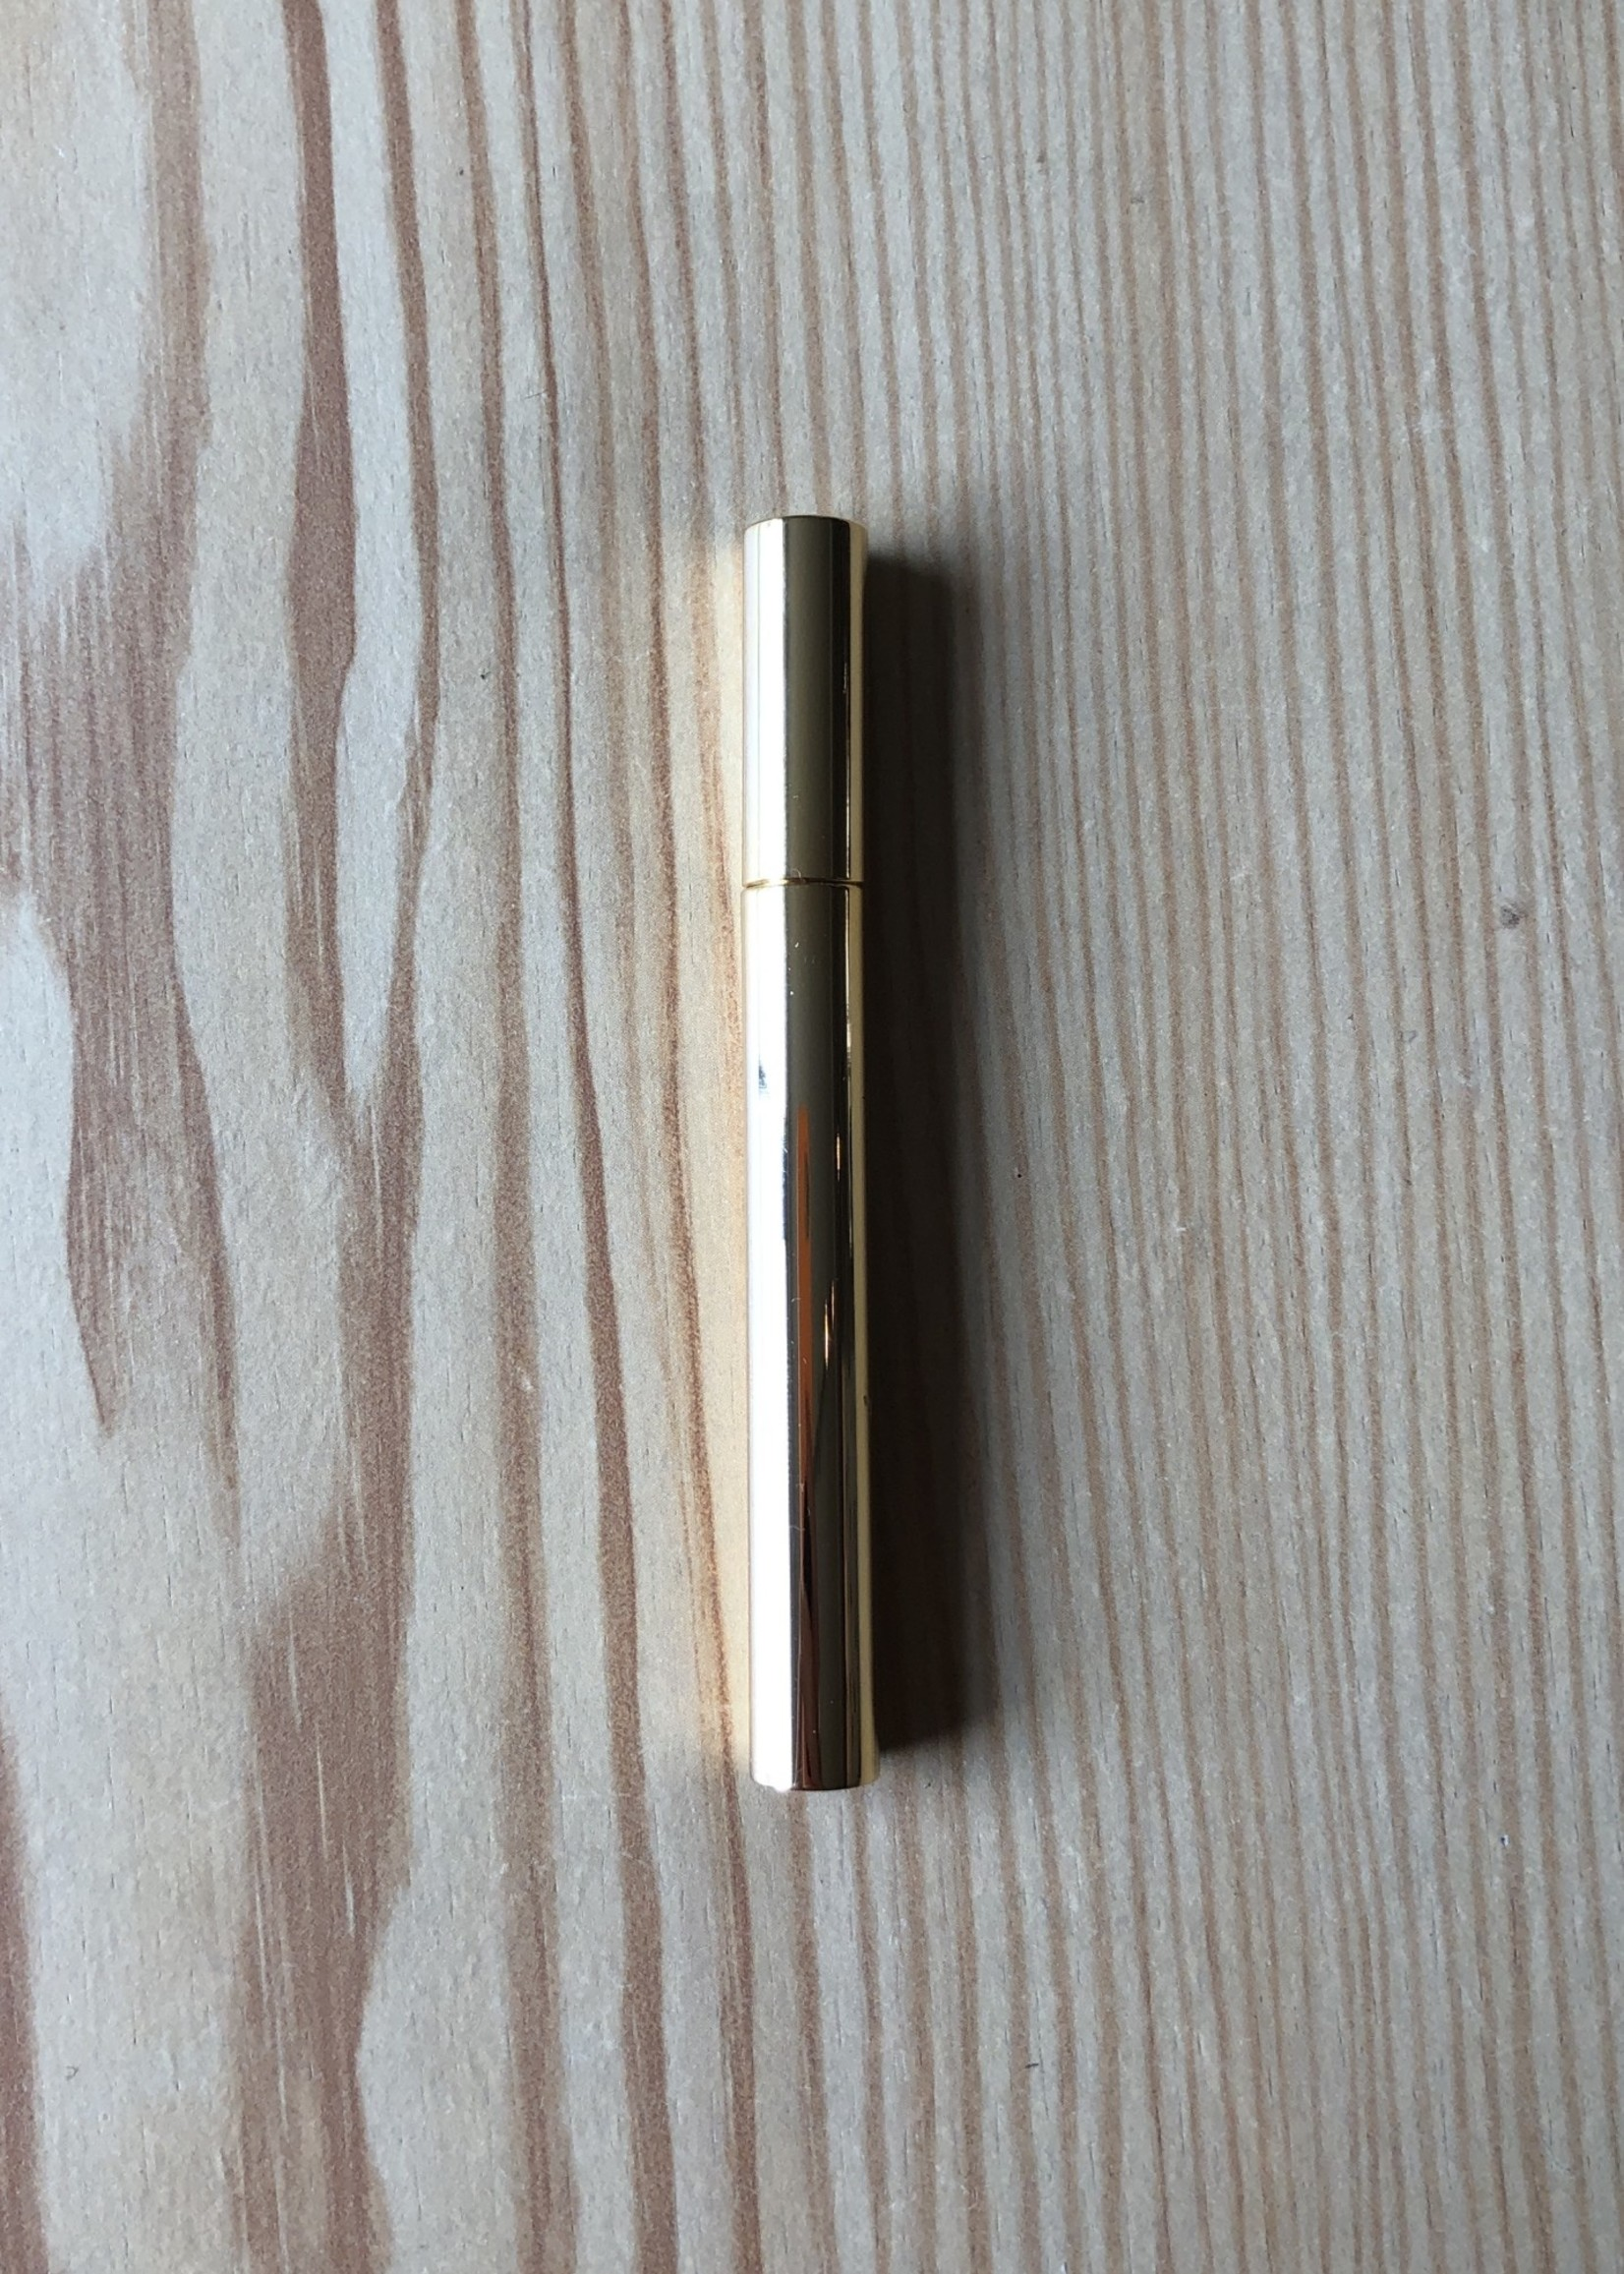 Tsubota Pearl Sigaretta Metallic Lighter